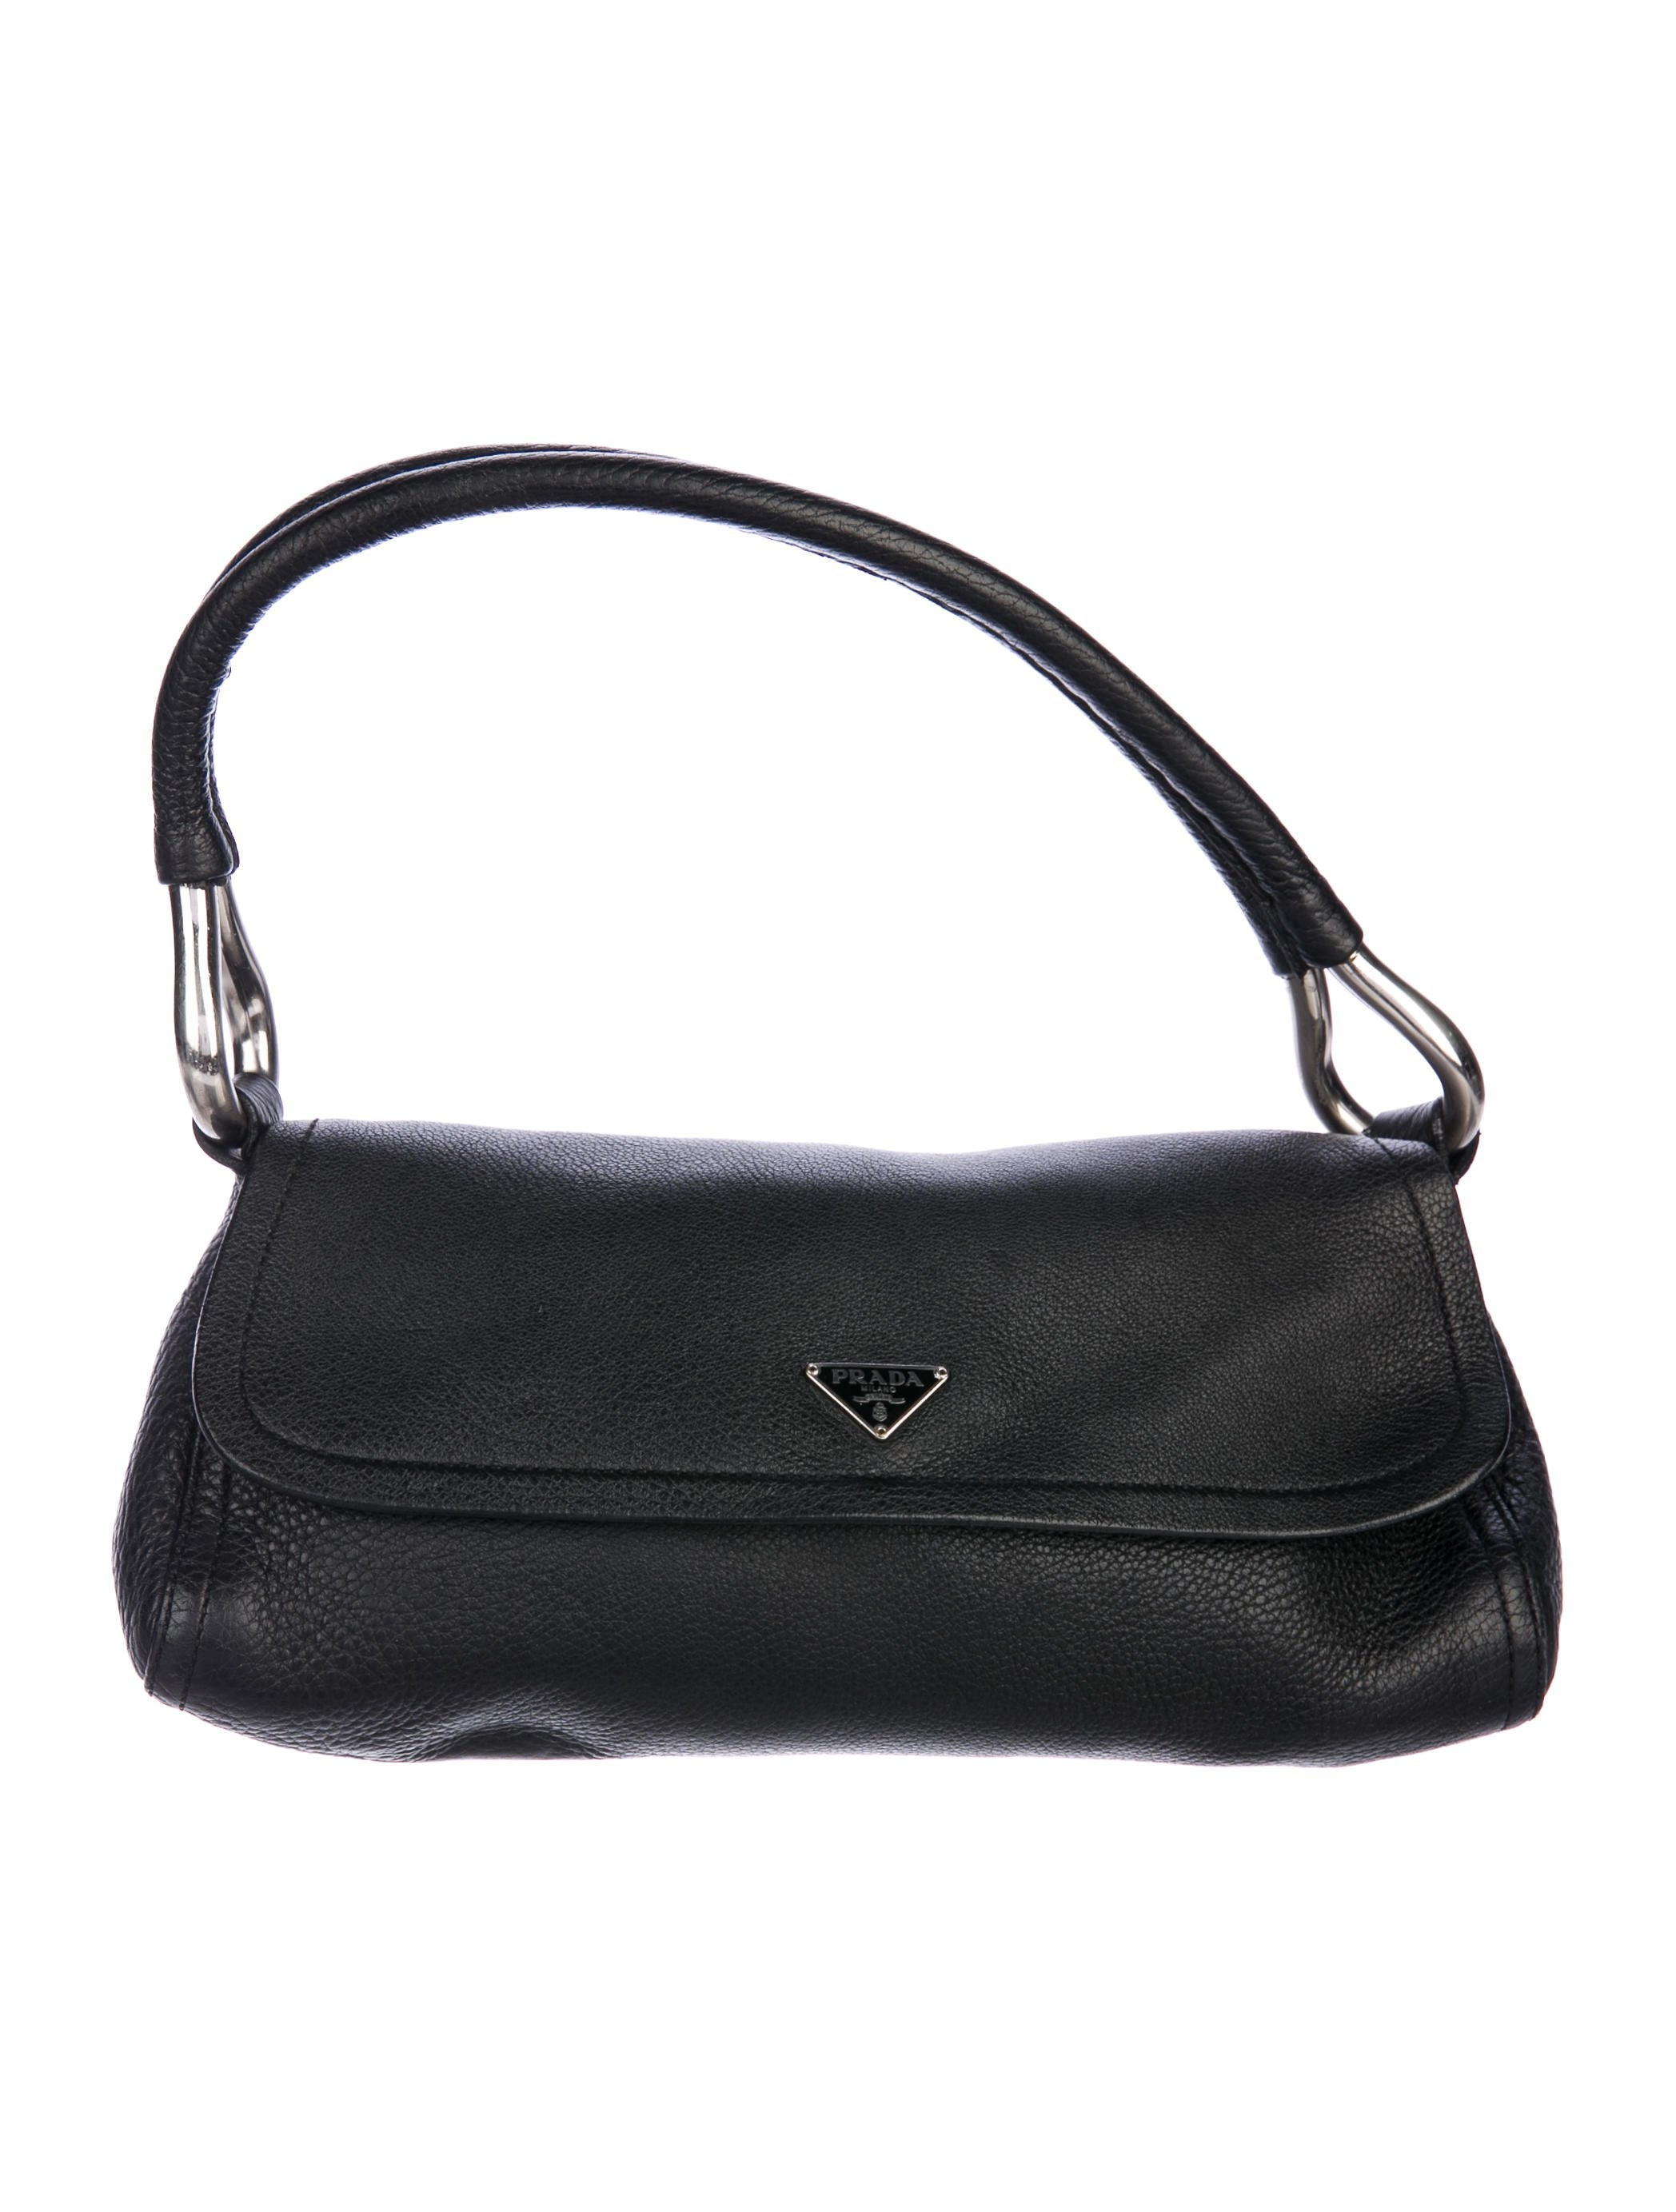 1006fc71e255 Prada Vitello Daino Shoulder Bag - Handbags - PRA217662